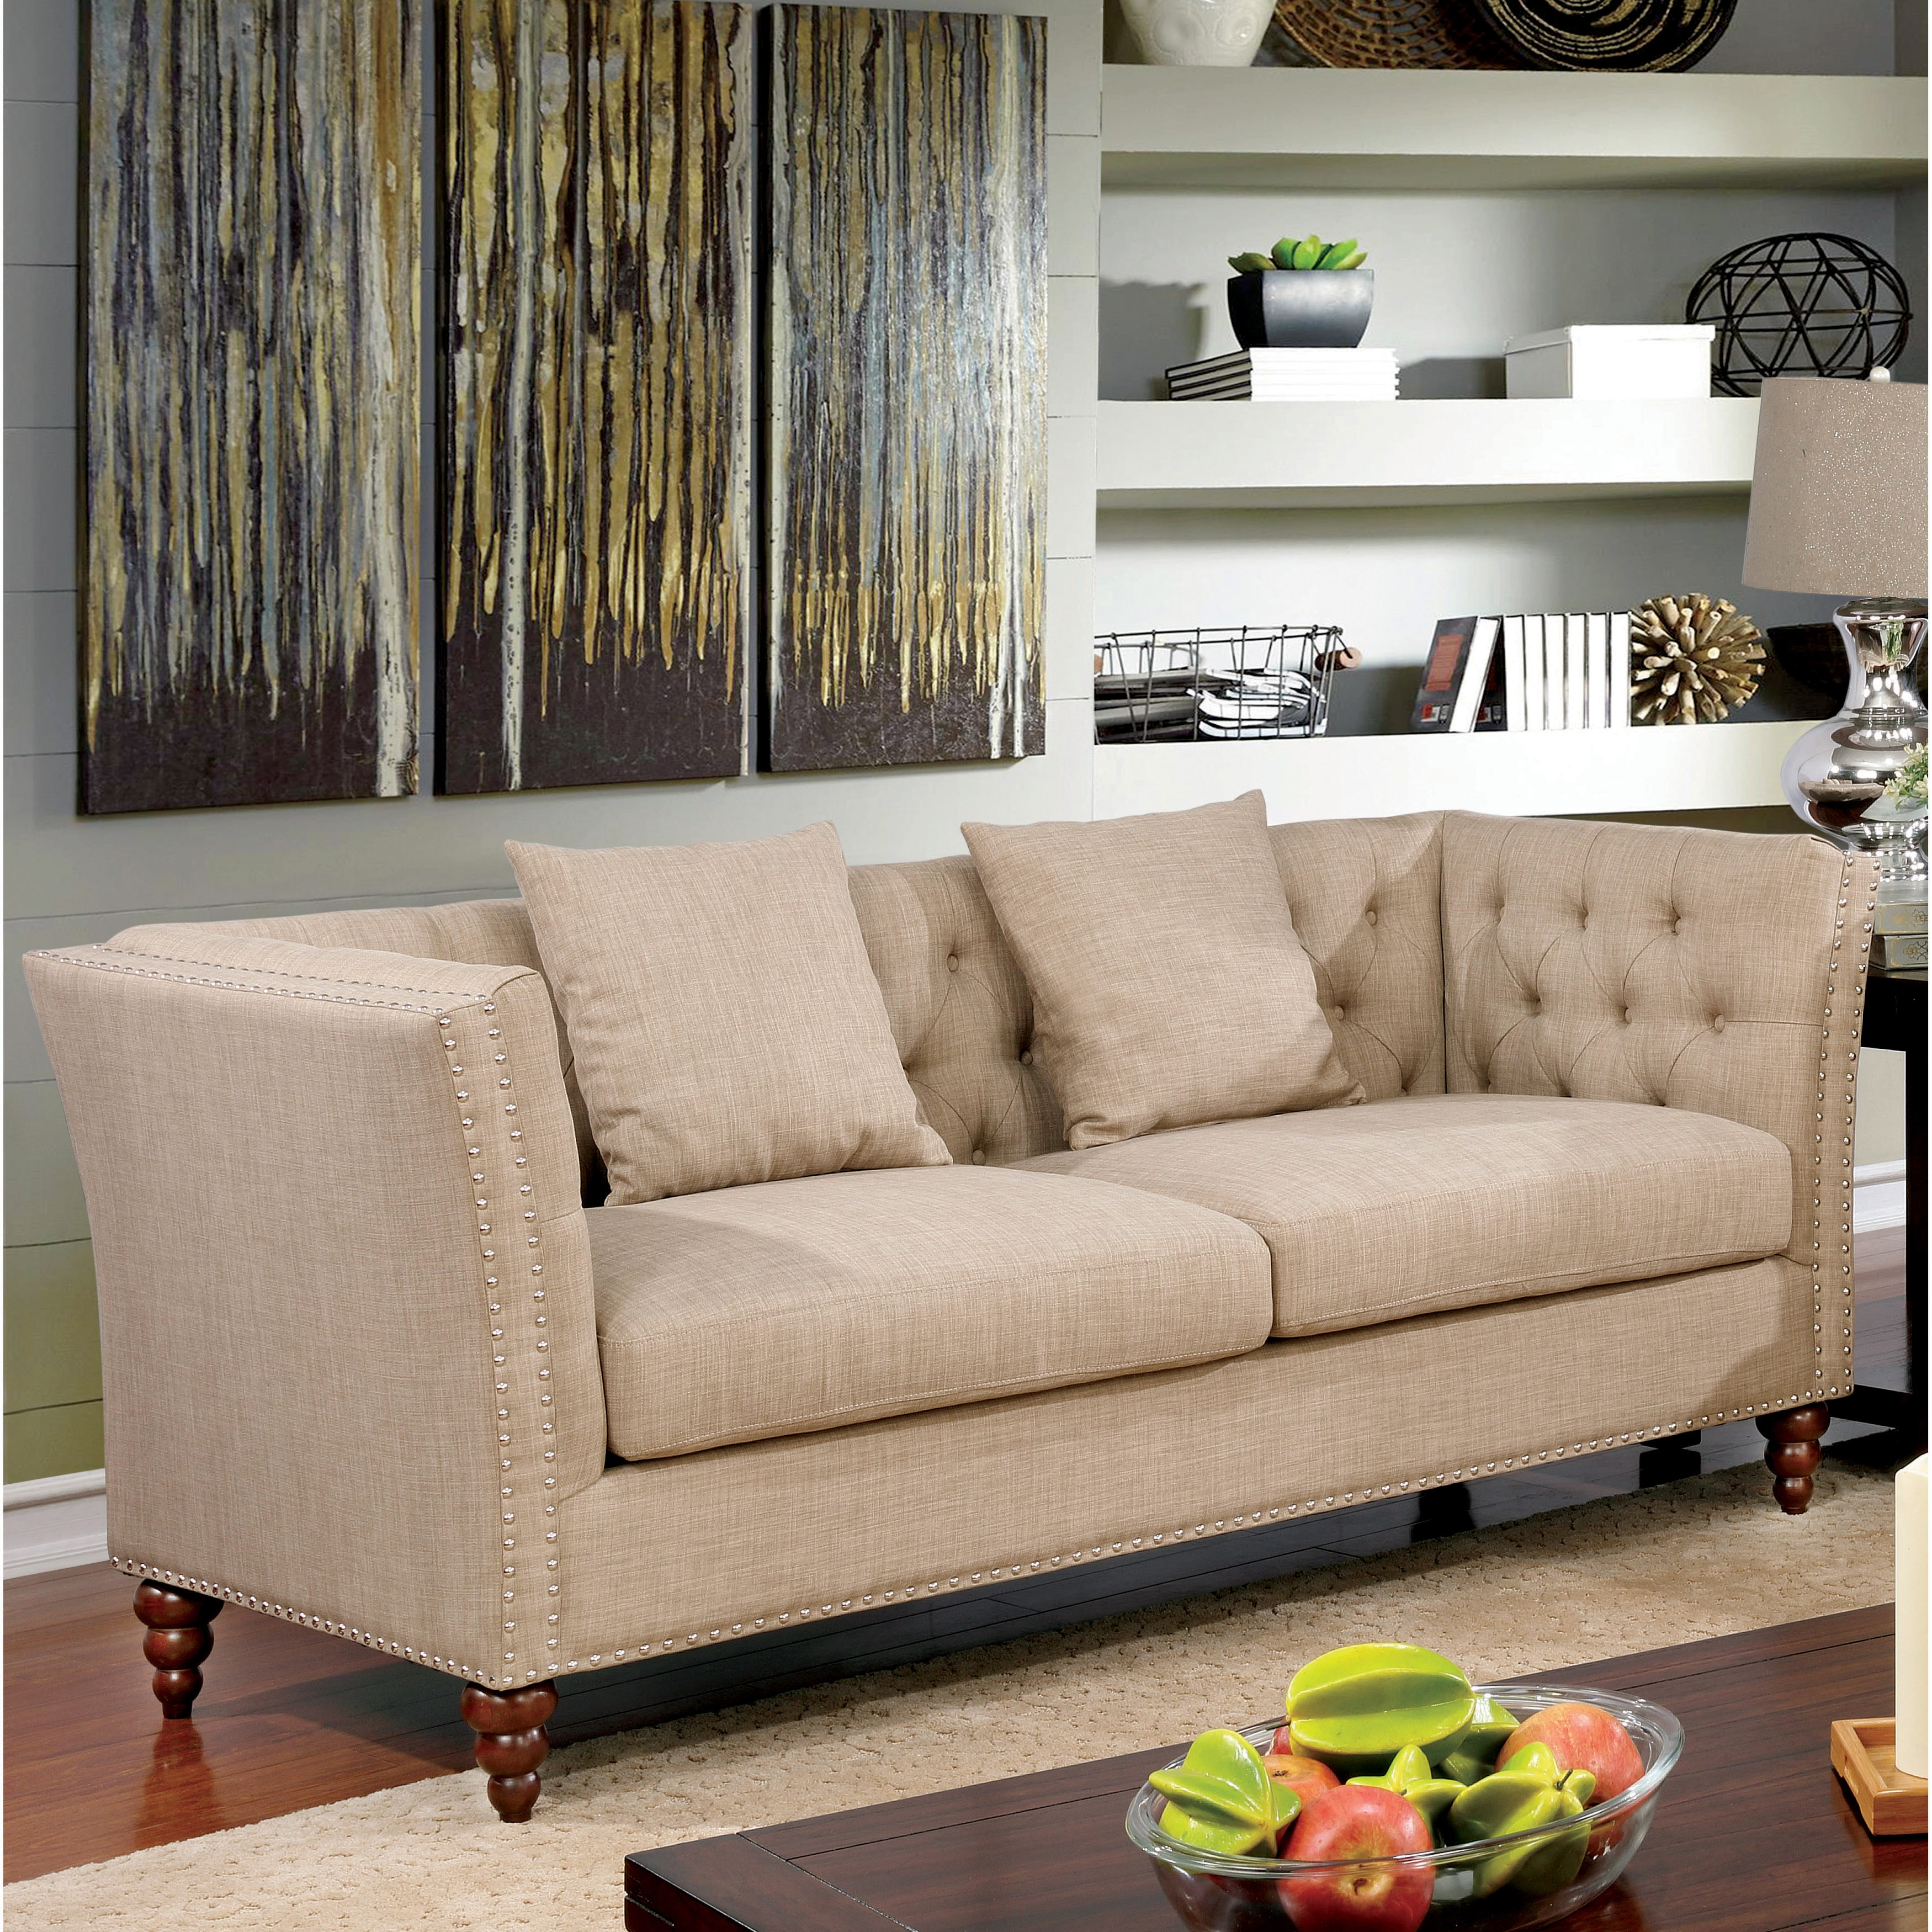 Exceptionnel Shop Furniture Of America Cerona Contemporary Tuxedo Style Beige Tufted  Linen Sofa   On Sale   Free Shipping Today   Overstock.com   14566292